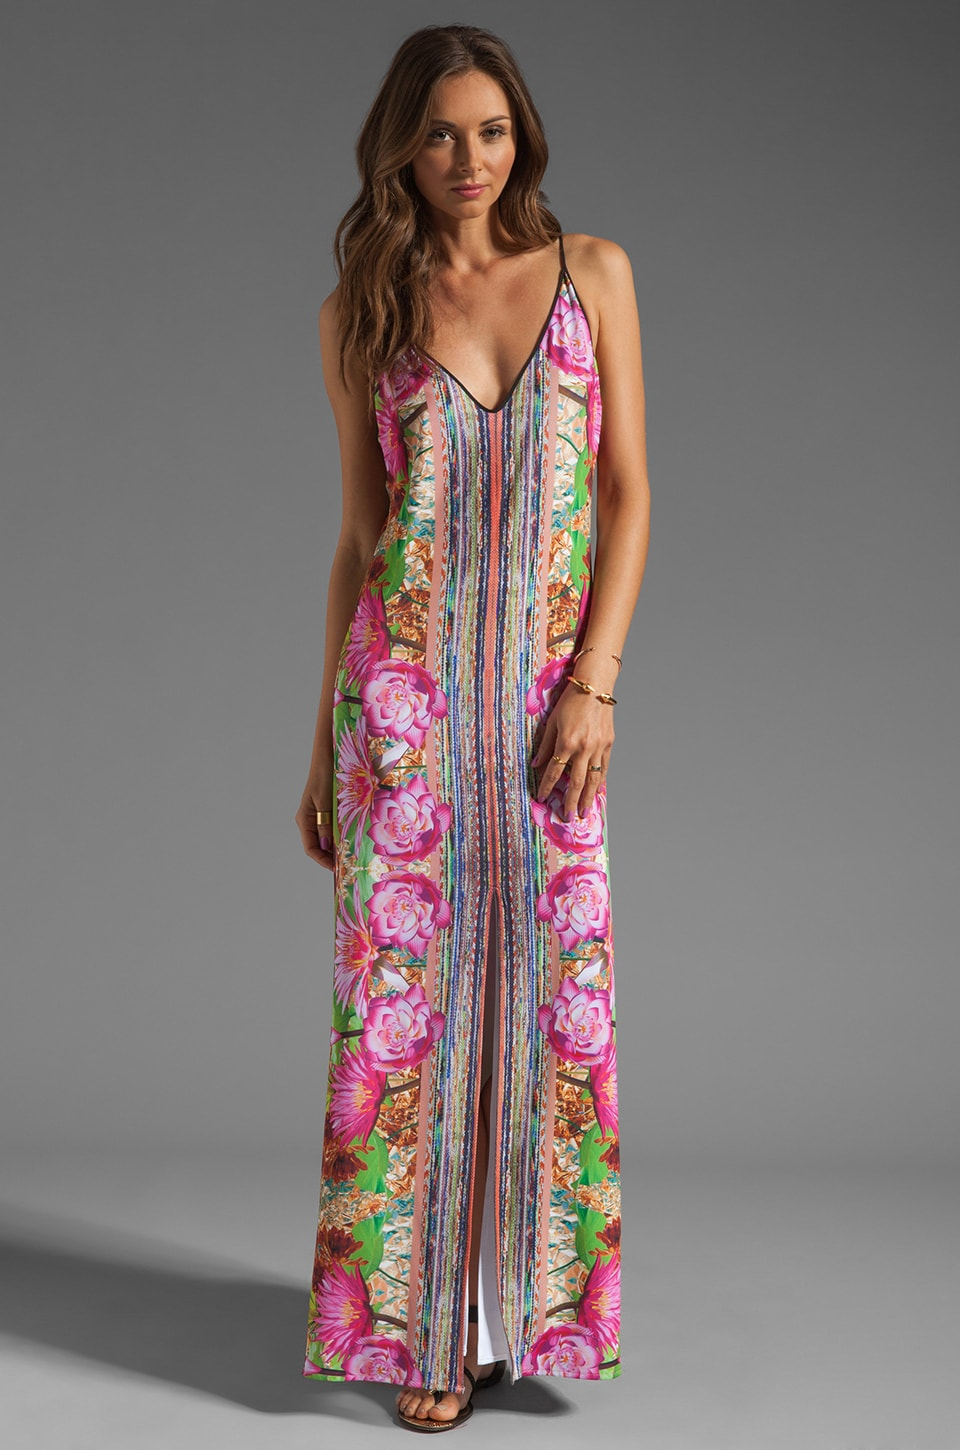 Clover Canyon Fools Gold Liquid Jersey Dress in Multi